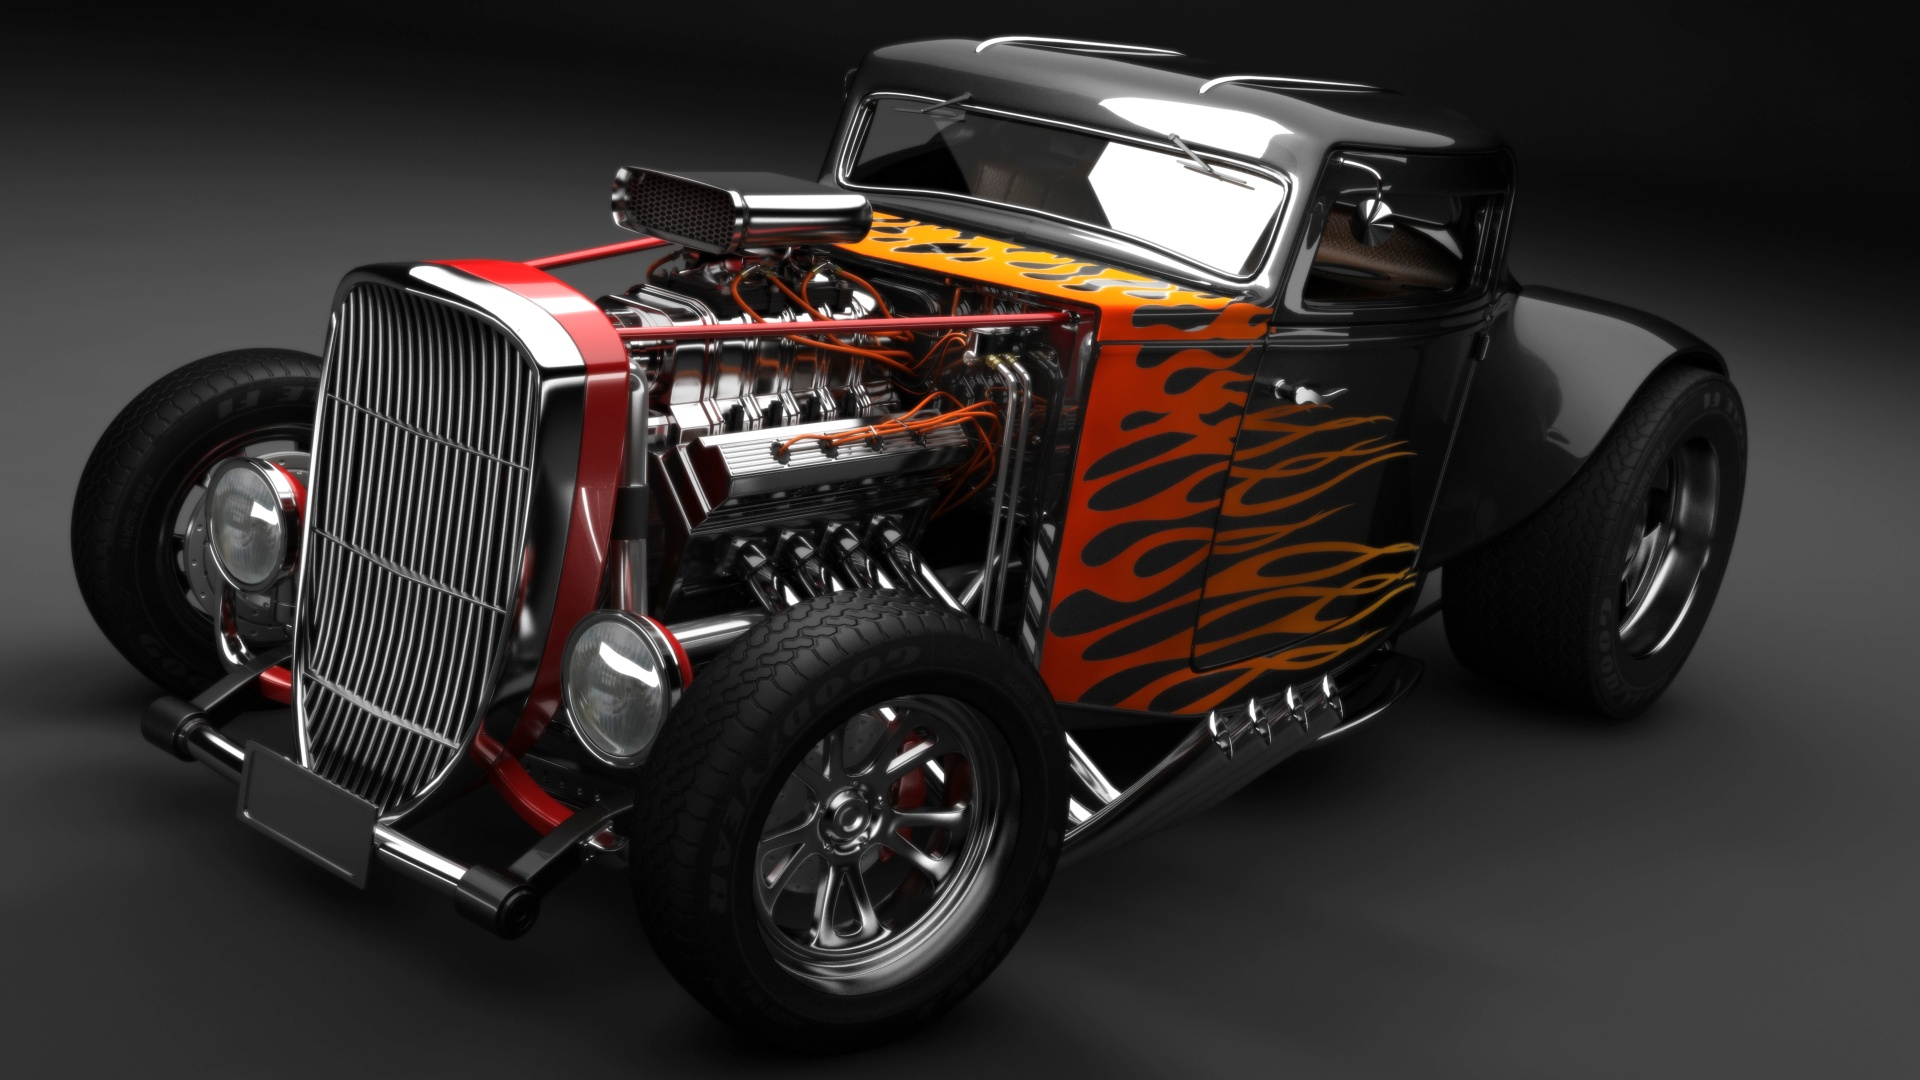 Hot Rod Wallpapers   A Link to the Past   MuscleDrive 1920x1080